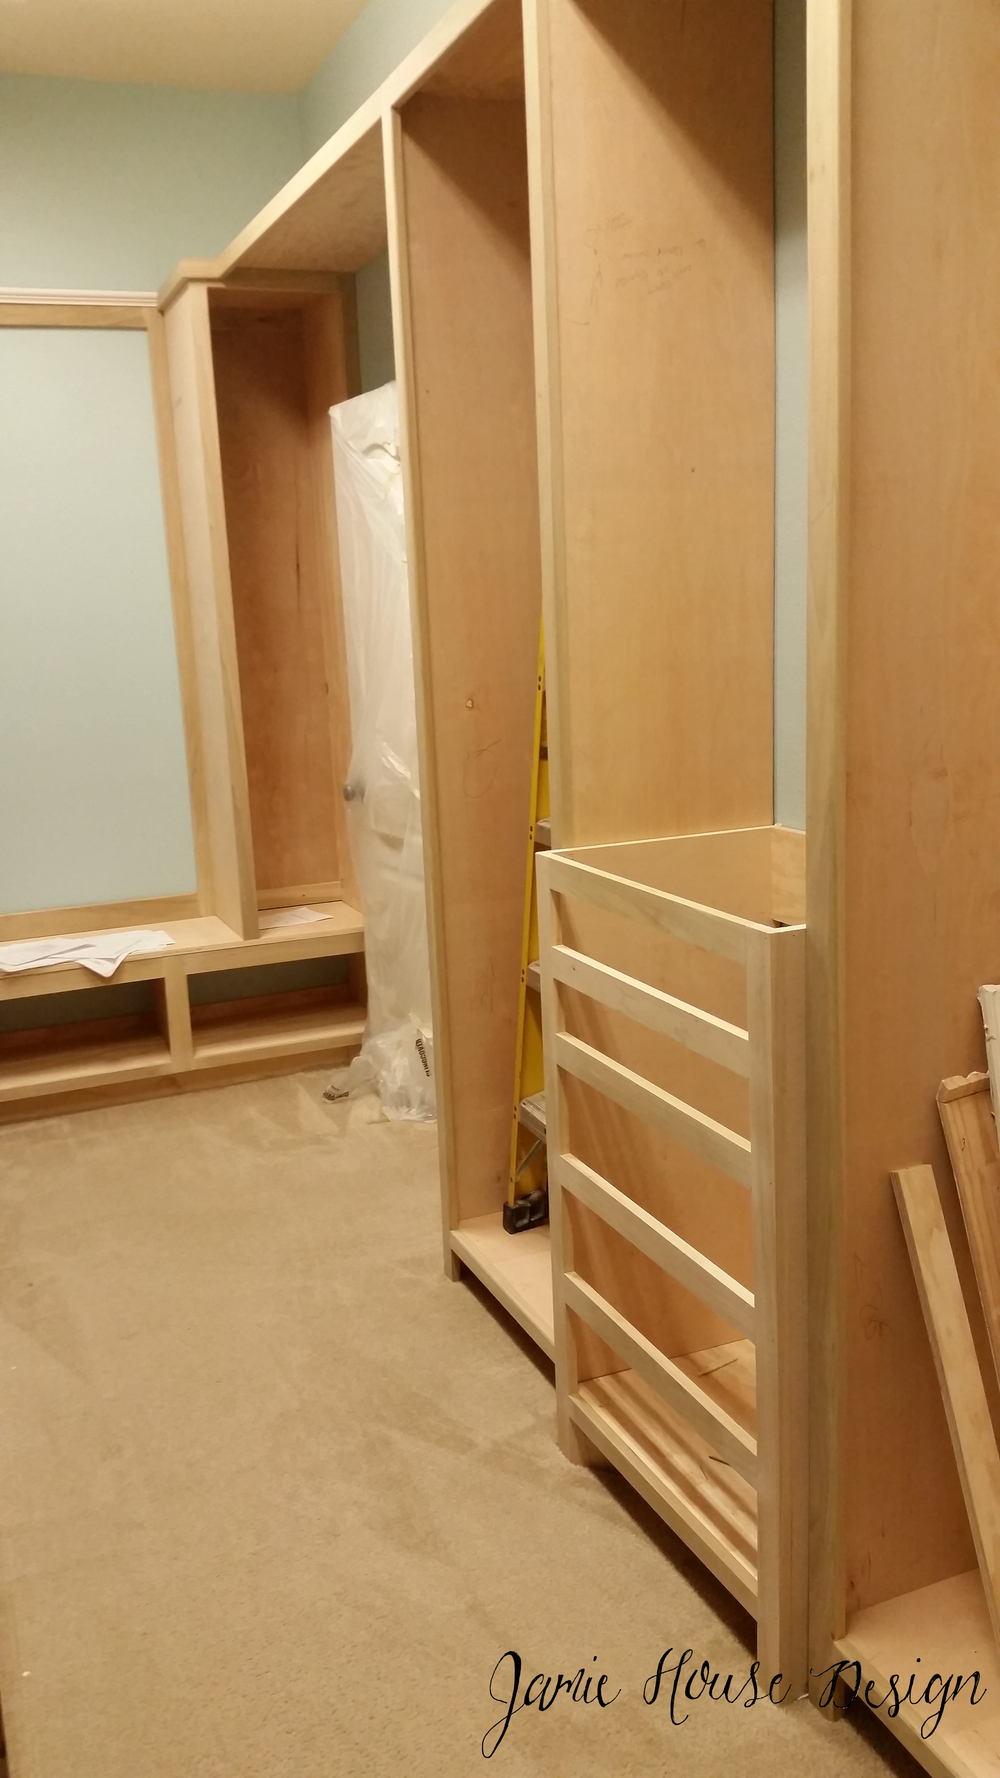 Closet in progress- Jamie House Design